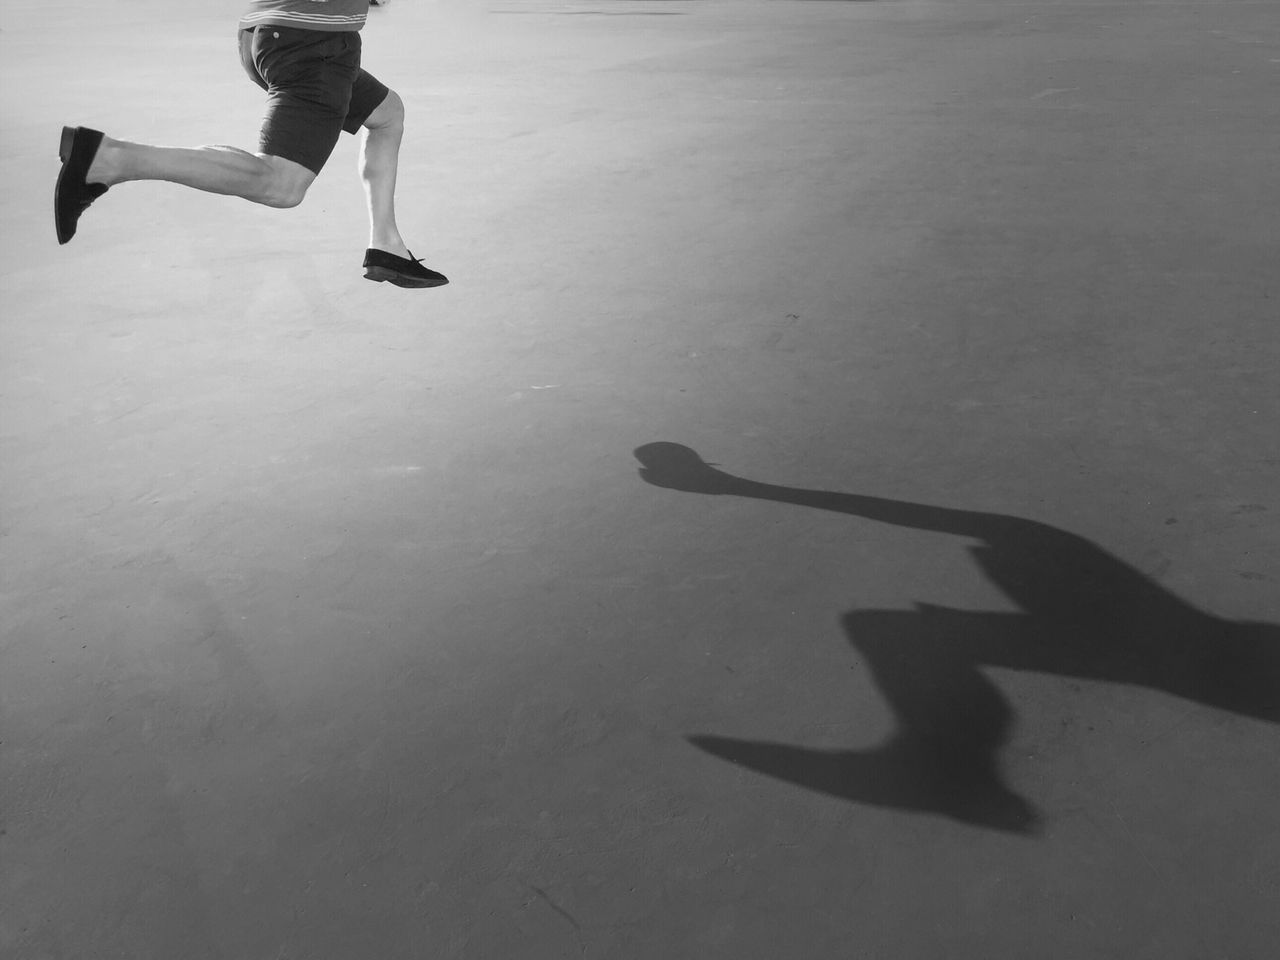 Jumping Shadow IPhoneography Perspective Blackandwhite Happy Jumper And His Shadow The Way I'm Seeing It...... Having Fun Light And Shadow Light New Years Resolutions 2016 Move Better Look Twice